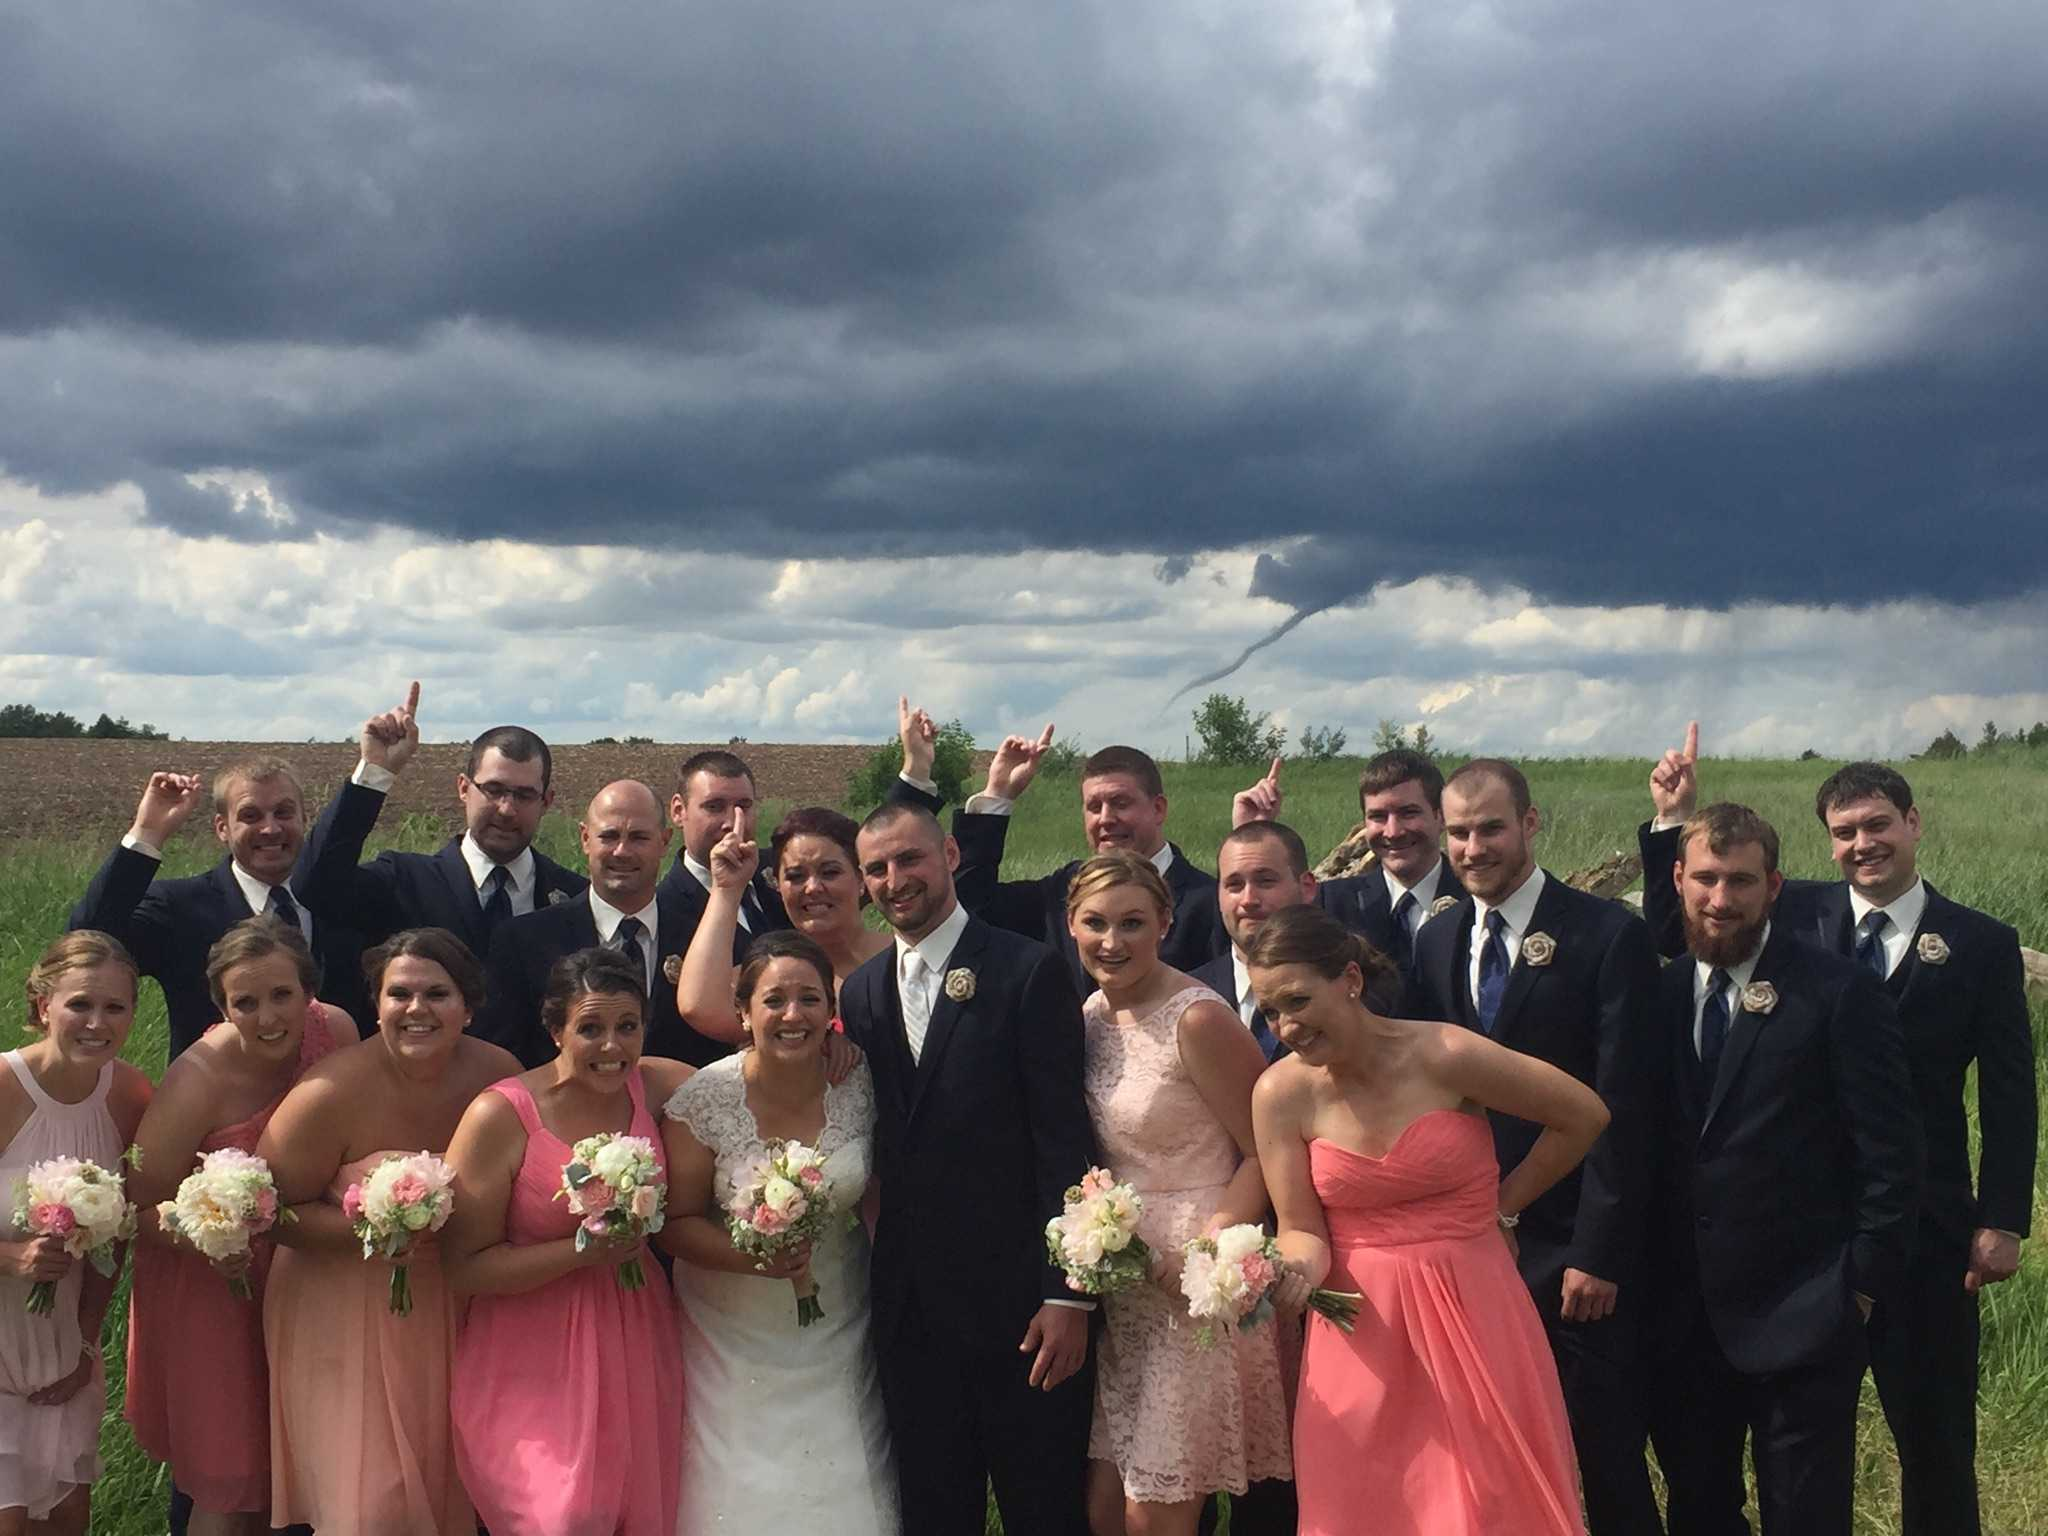 Funnel cloud photobombs wedding photo | WXII 12